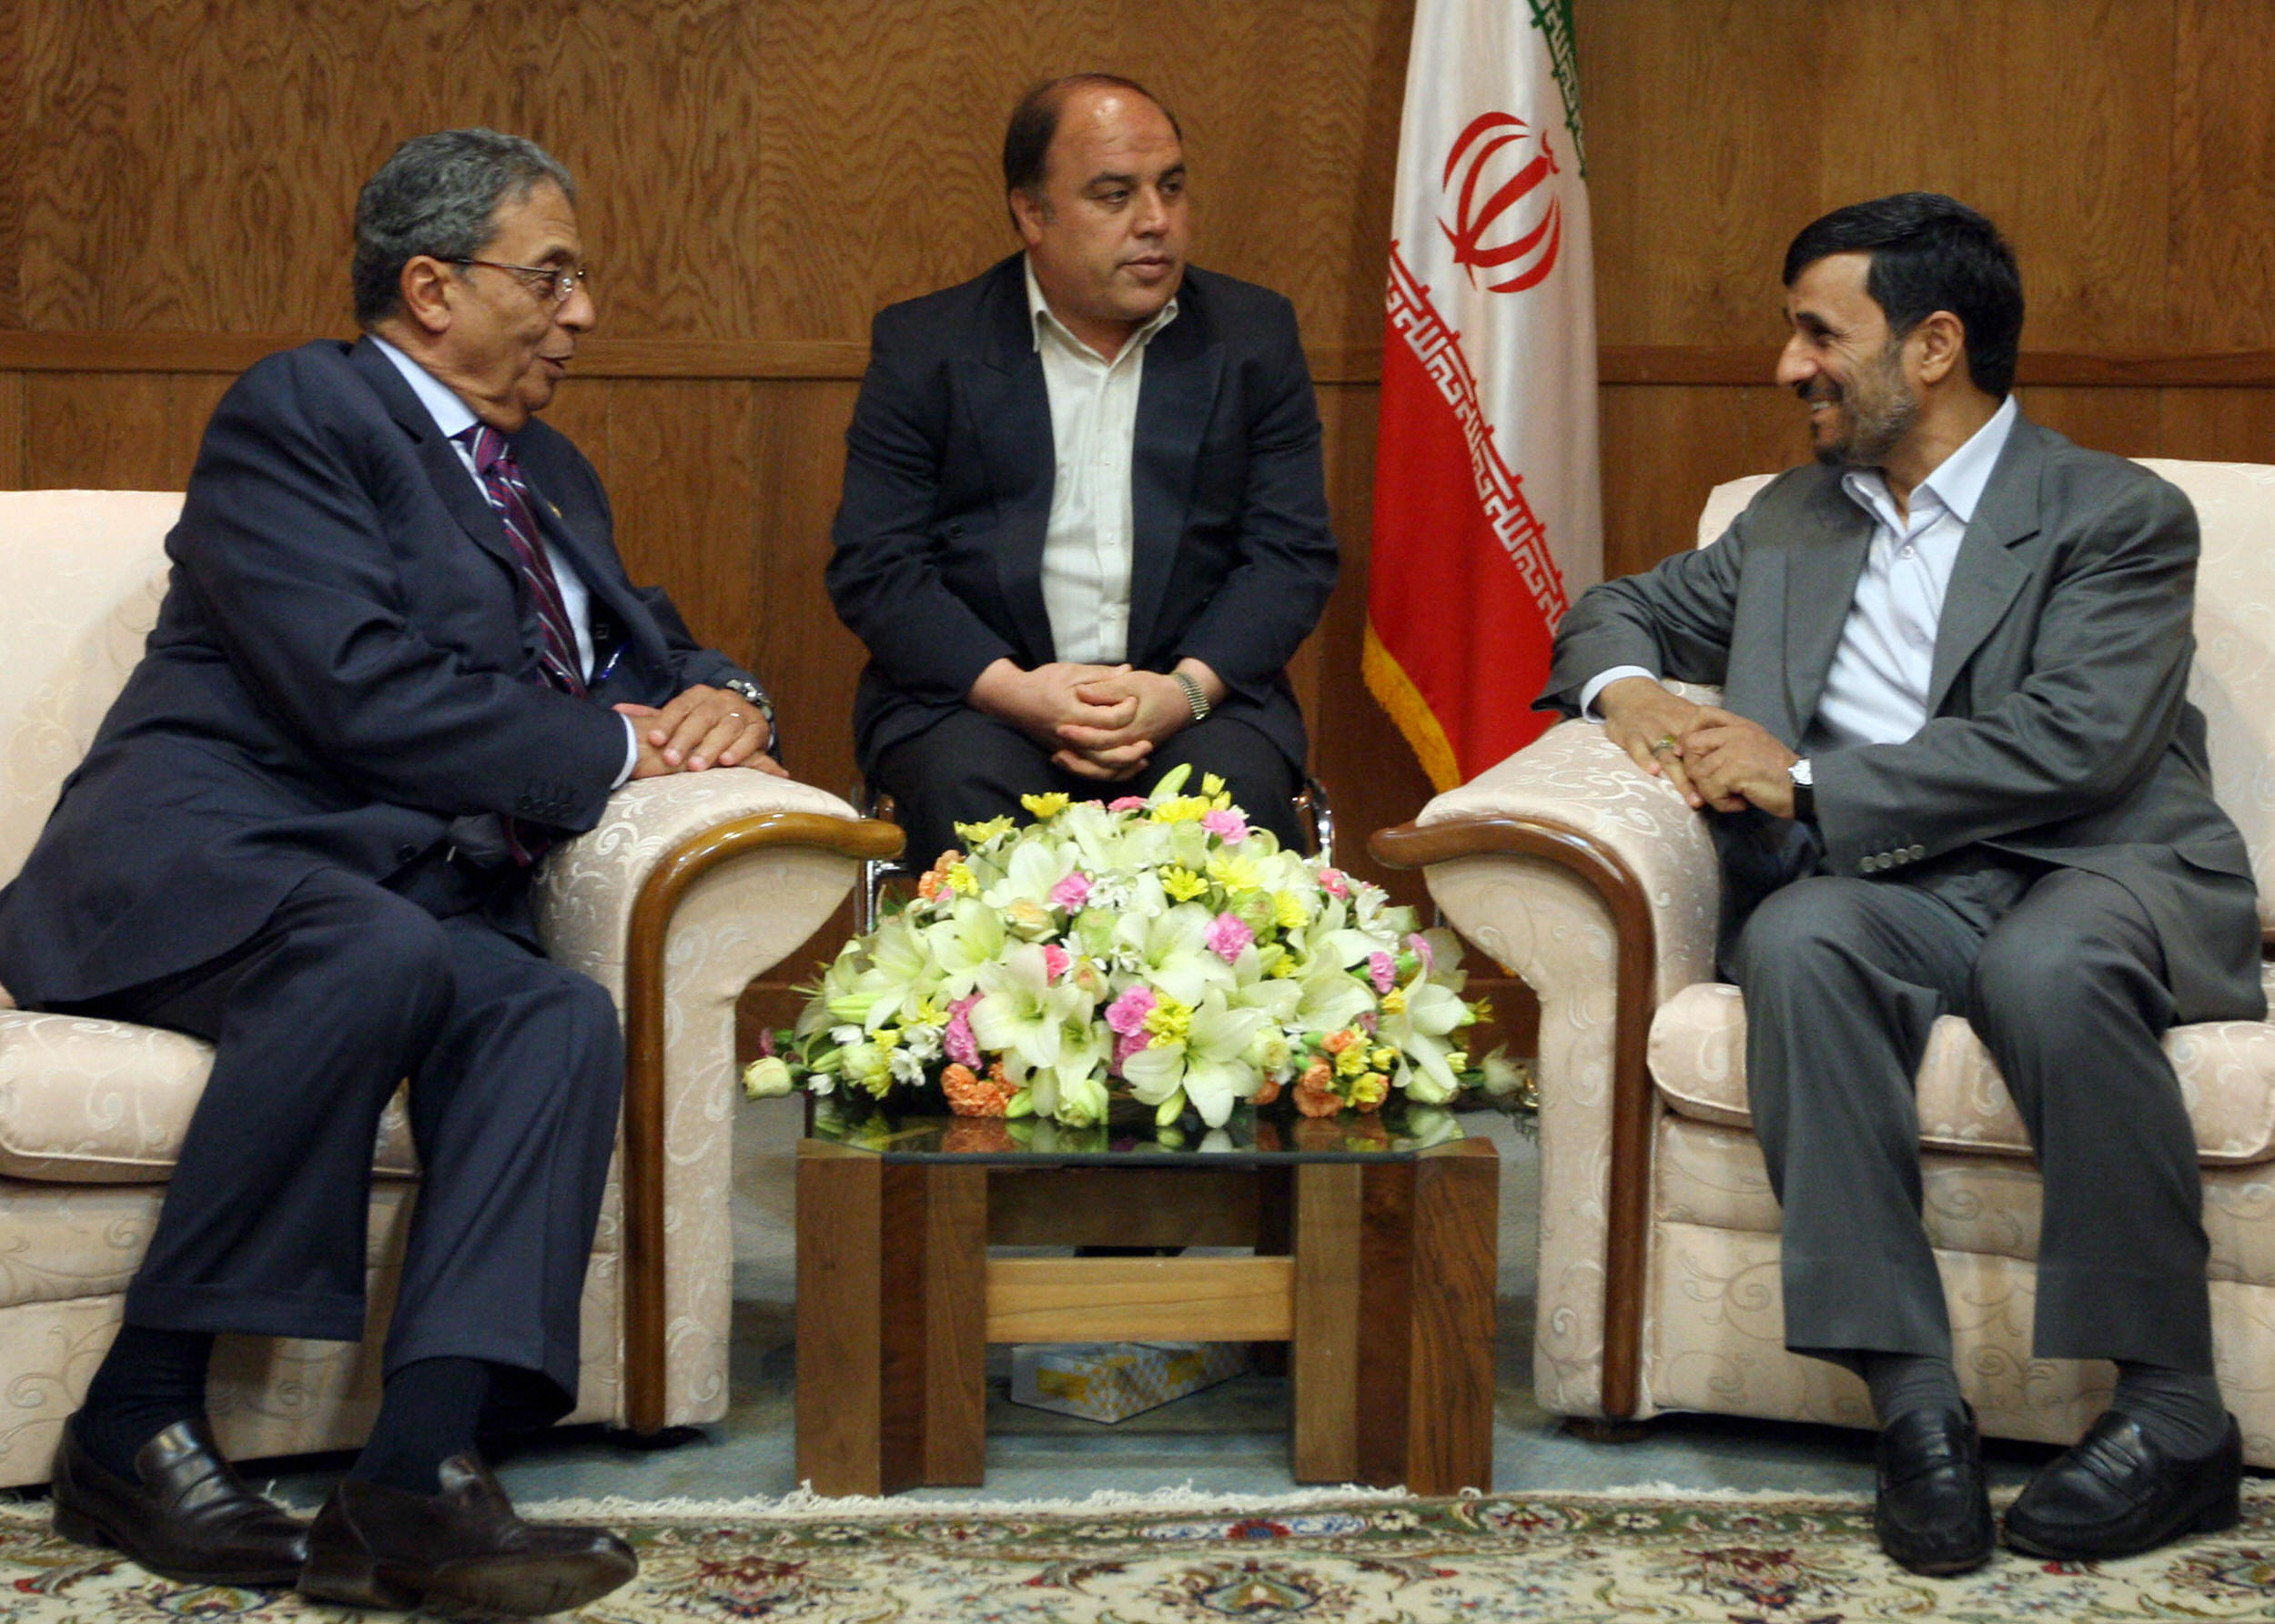 Iranian President Mahmoud Ahmadinejad meets with Arab League Secretary General Amr Mussa (L).